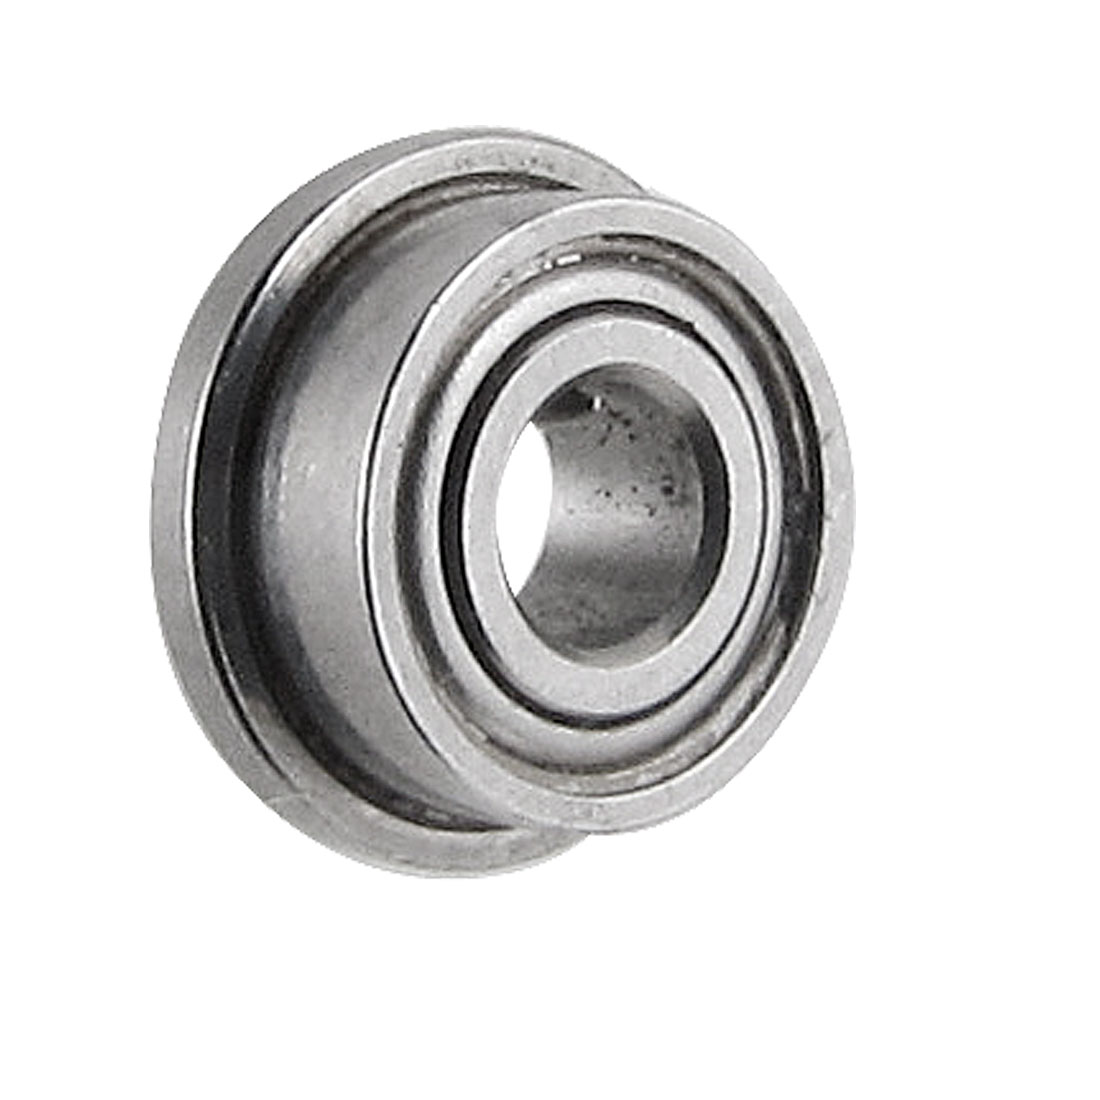 6mm x 2.5mm x 2.5mm Metal Shields Deep Groove Flanged Ball Bearing Silver Tone